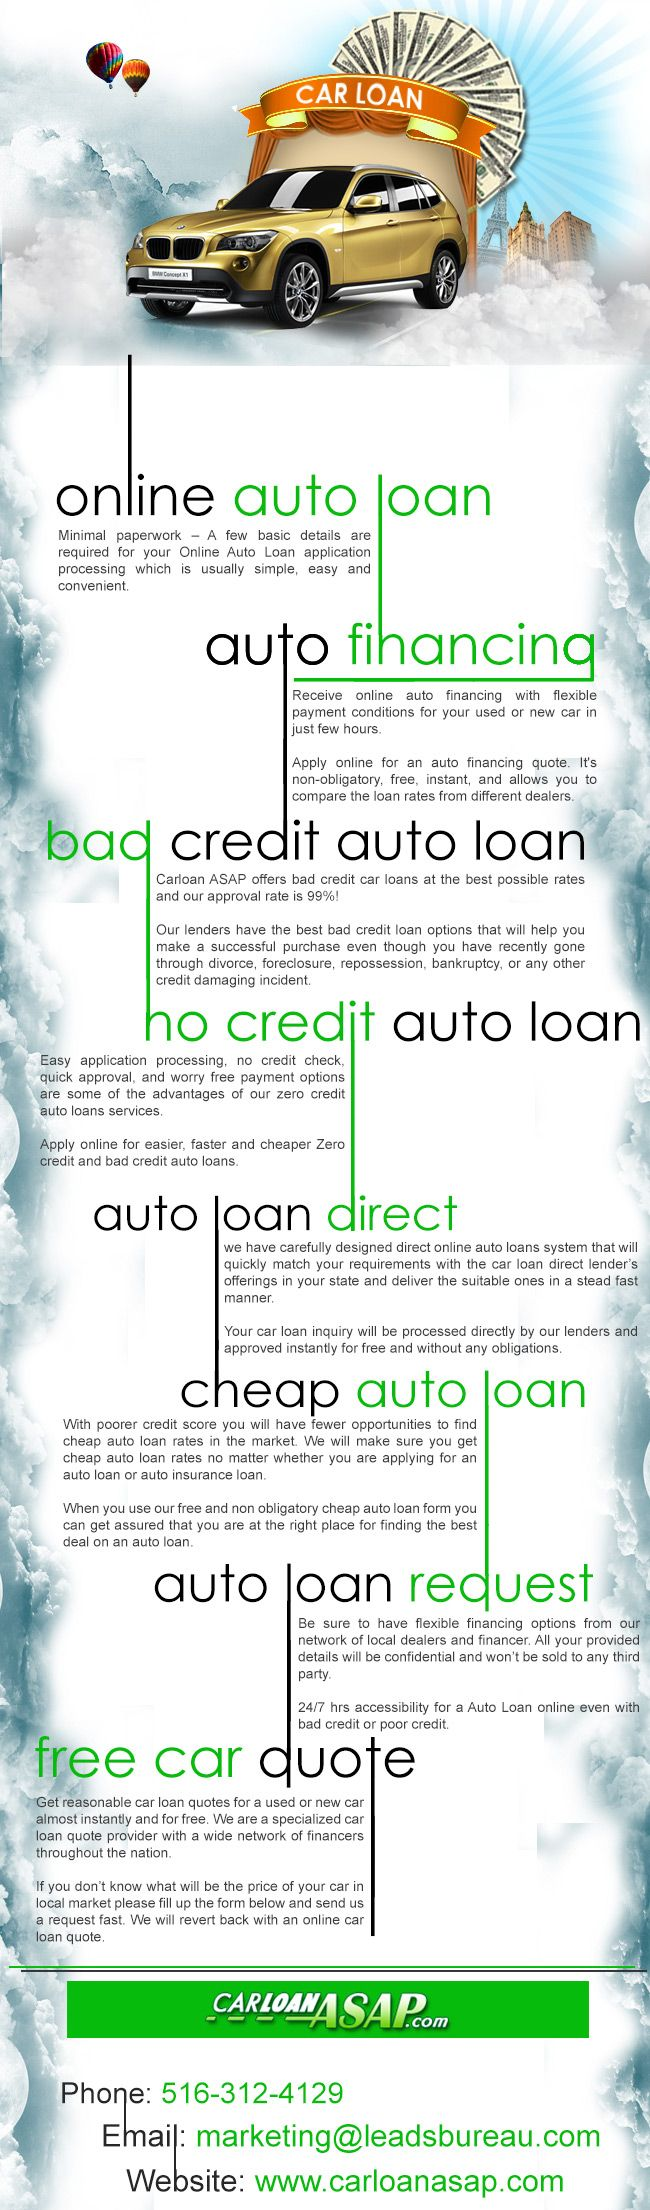 Get online car loan for New Cars, Used Cars or refinance